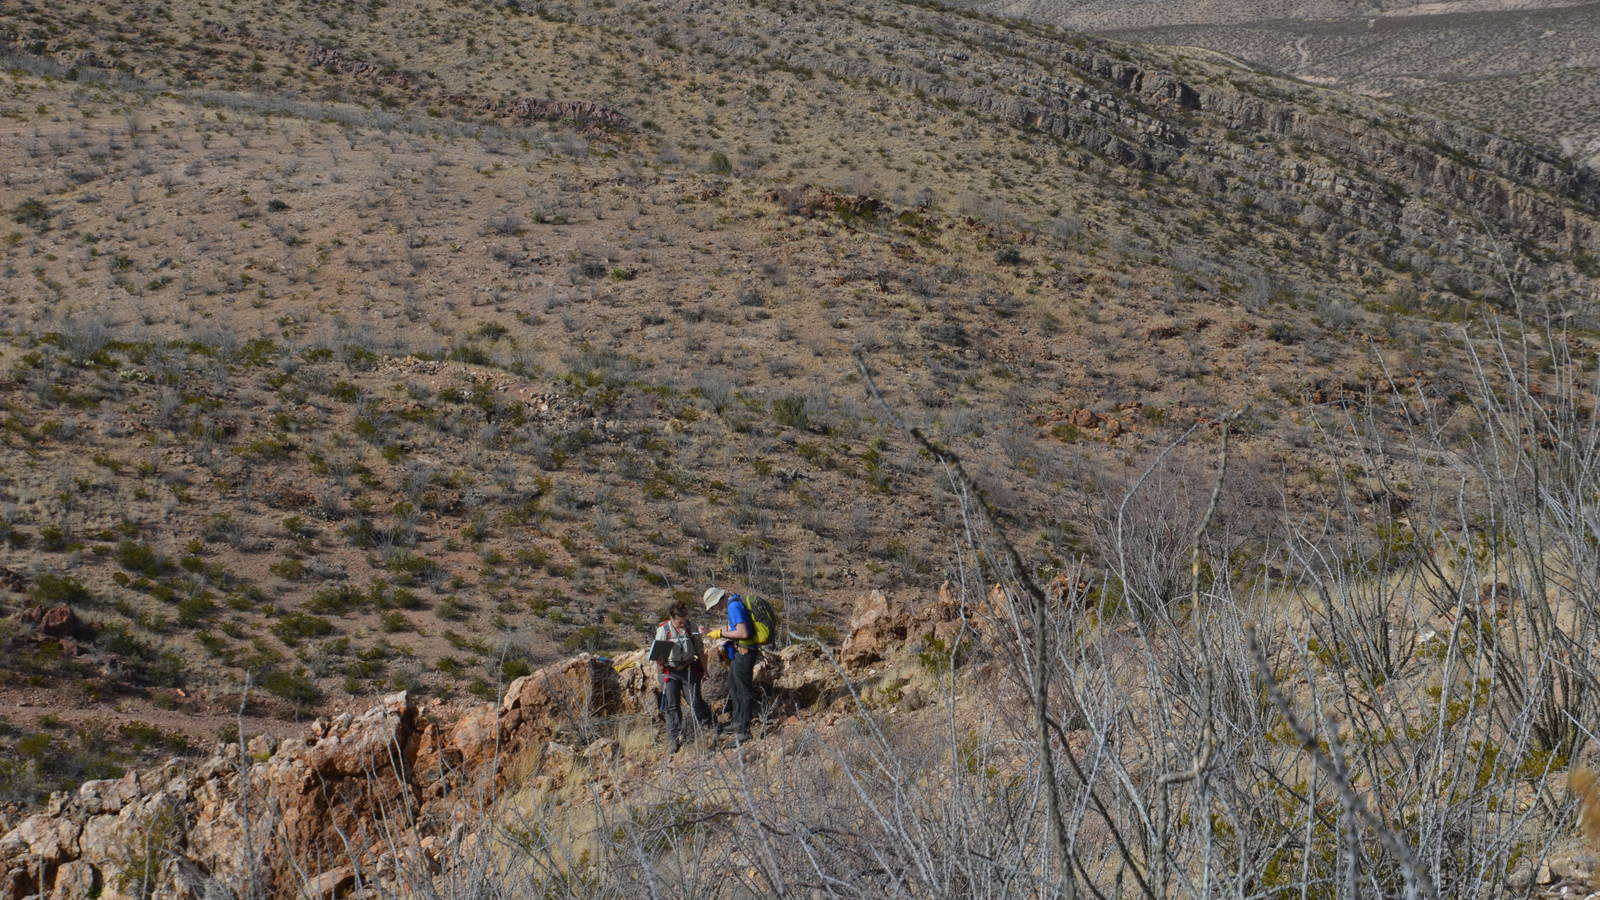 Geology Research NewMexico_06